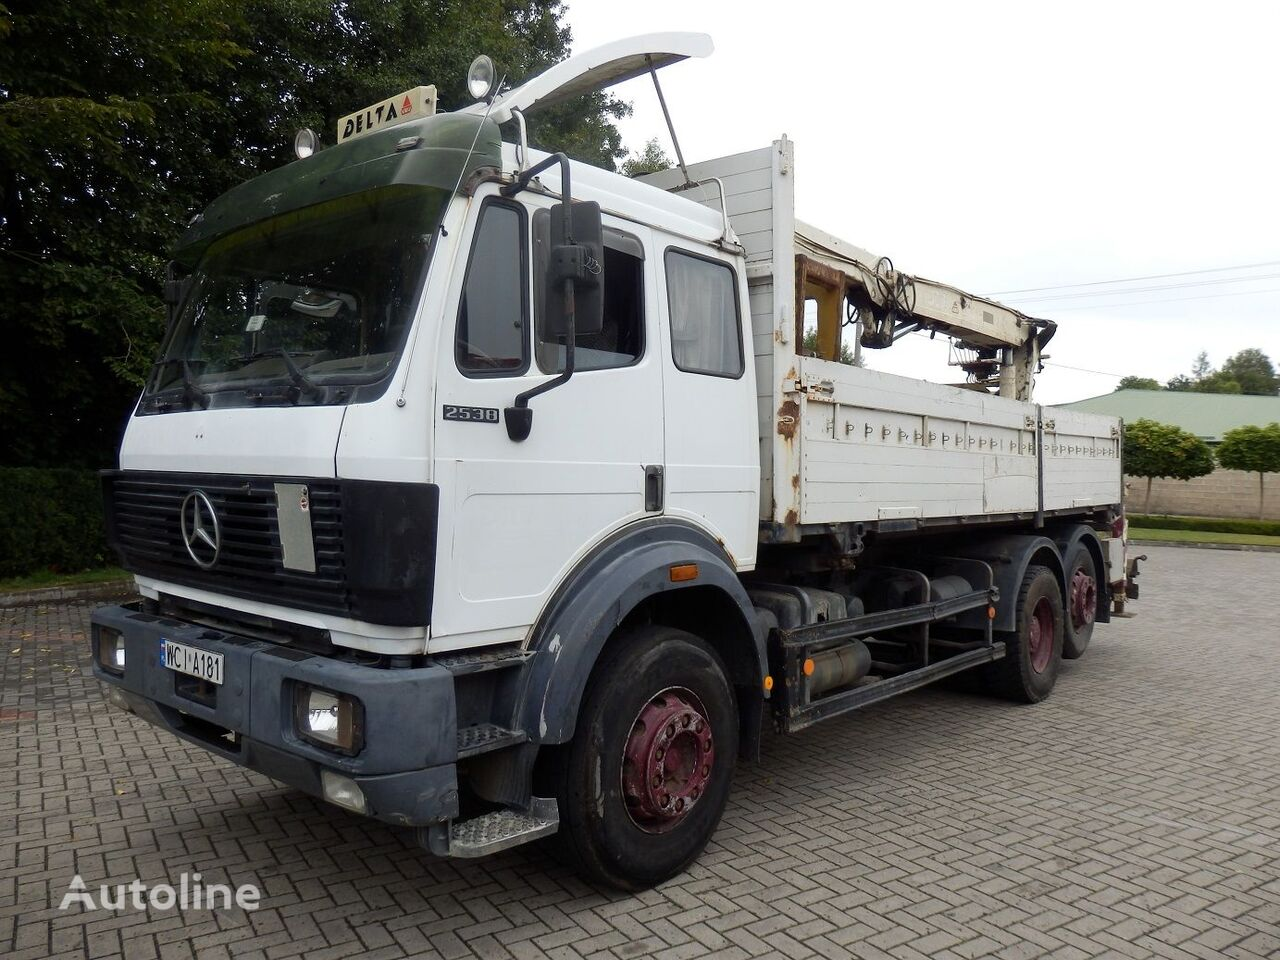 MERCEDES-BENZ SK 2538 6x2 Engine V8 13.t Axles  flatbed truck